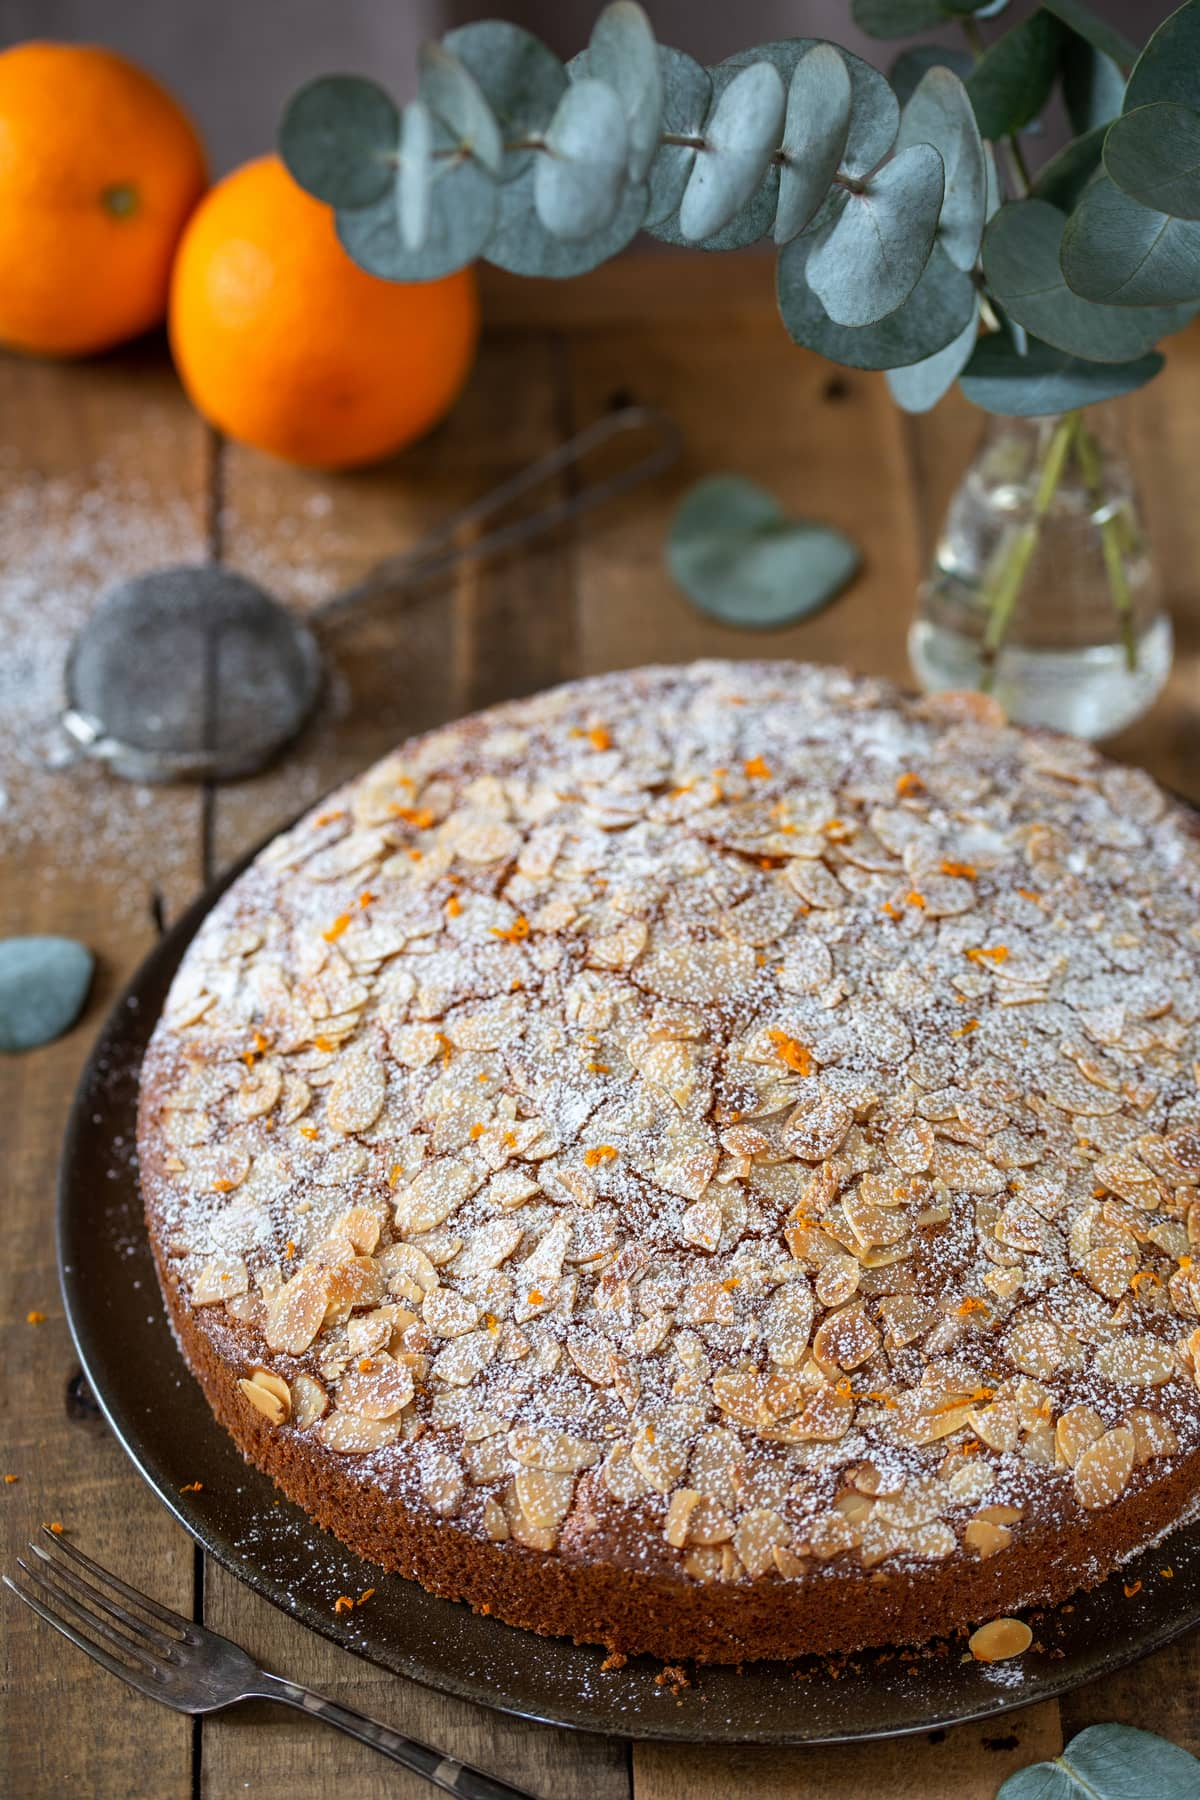 Italian-style carrot cake with almonds and orange zest.